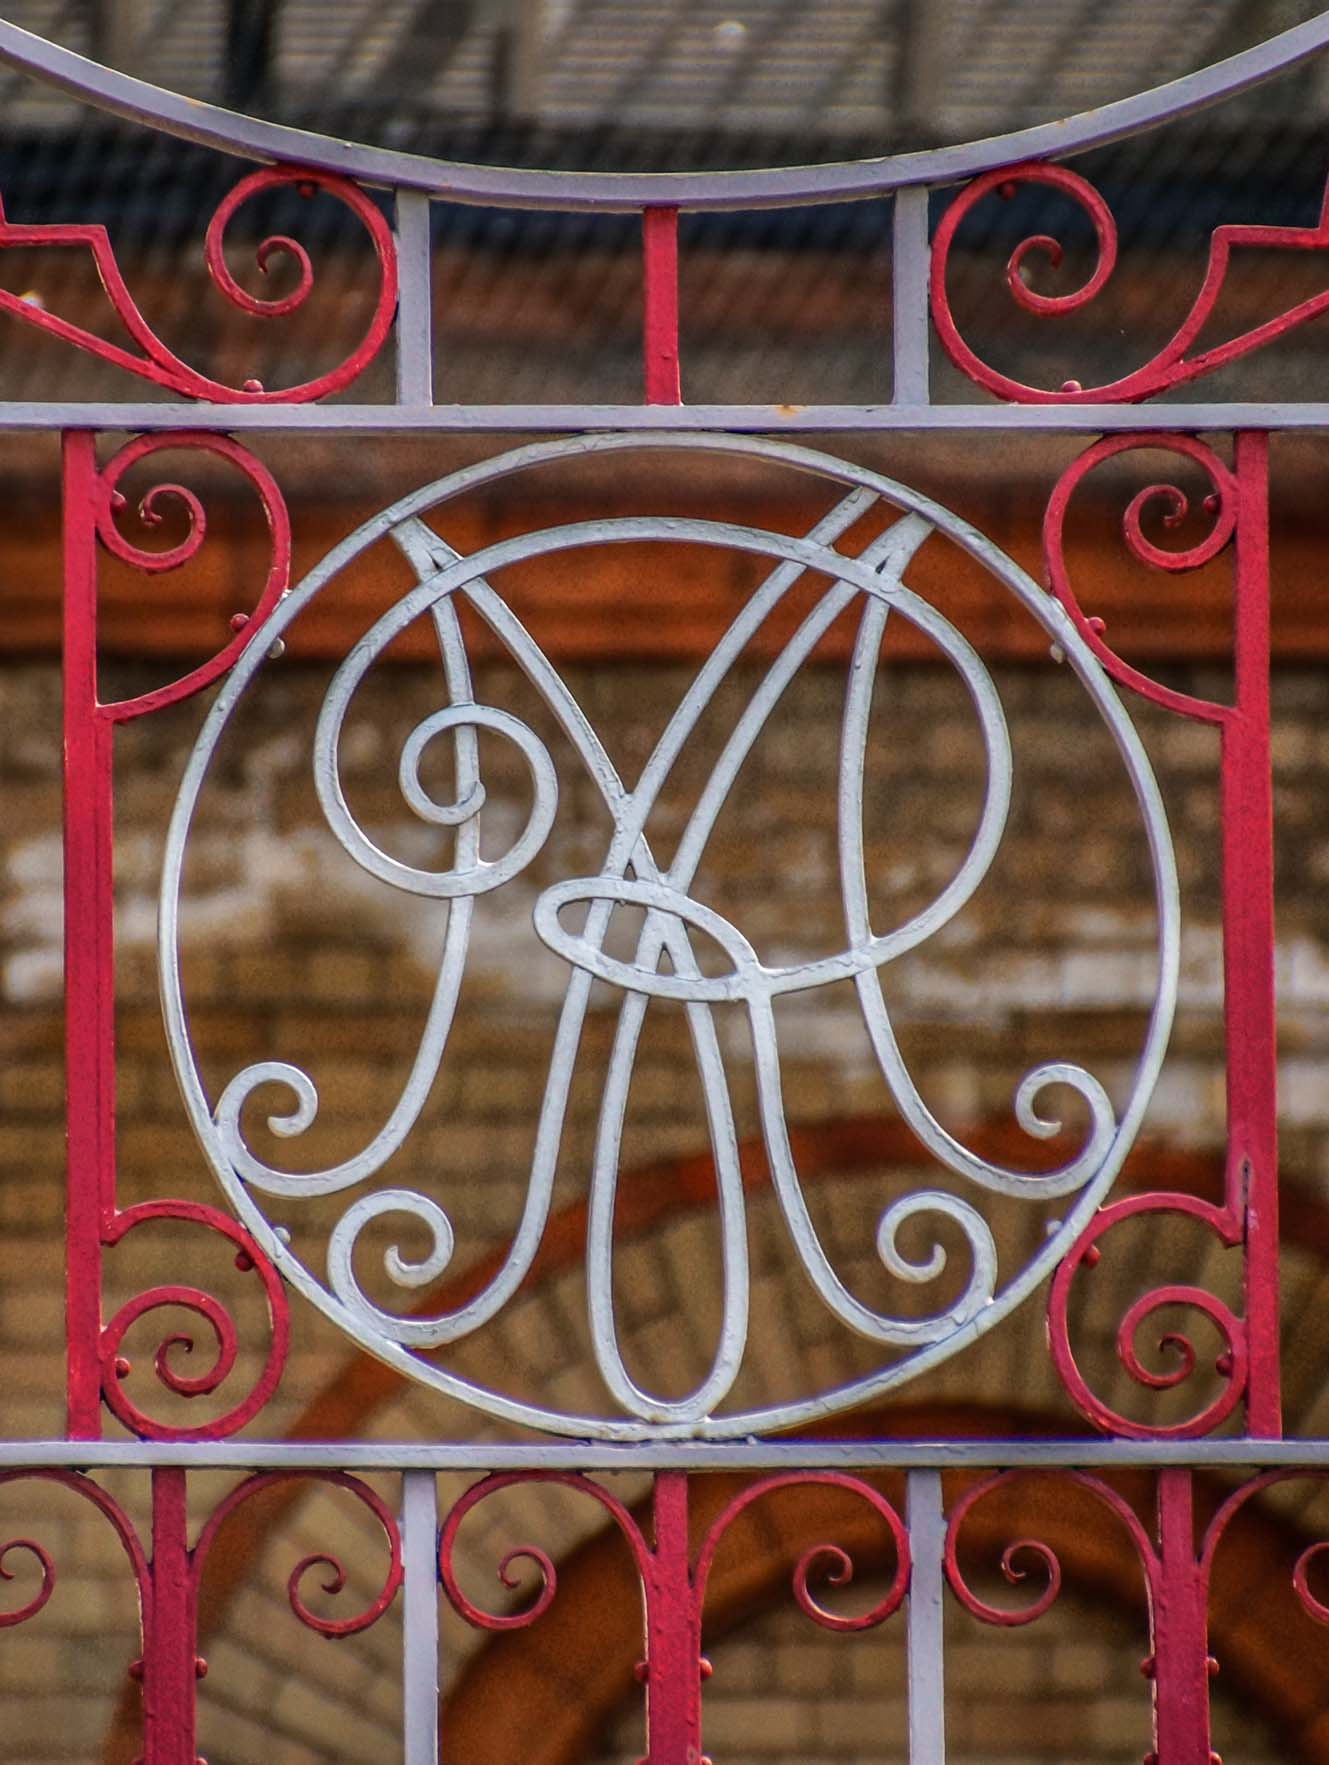 'MR' on an ironwork gate at the Station - John Brown